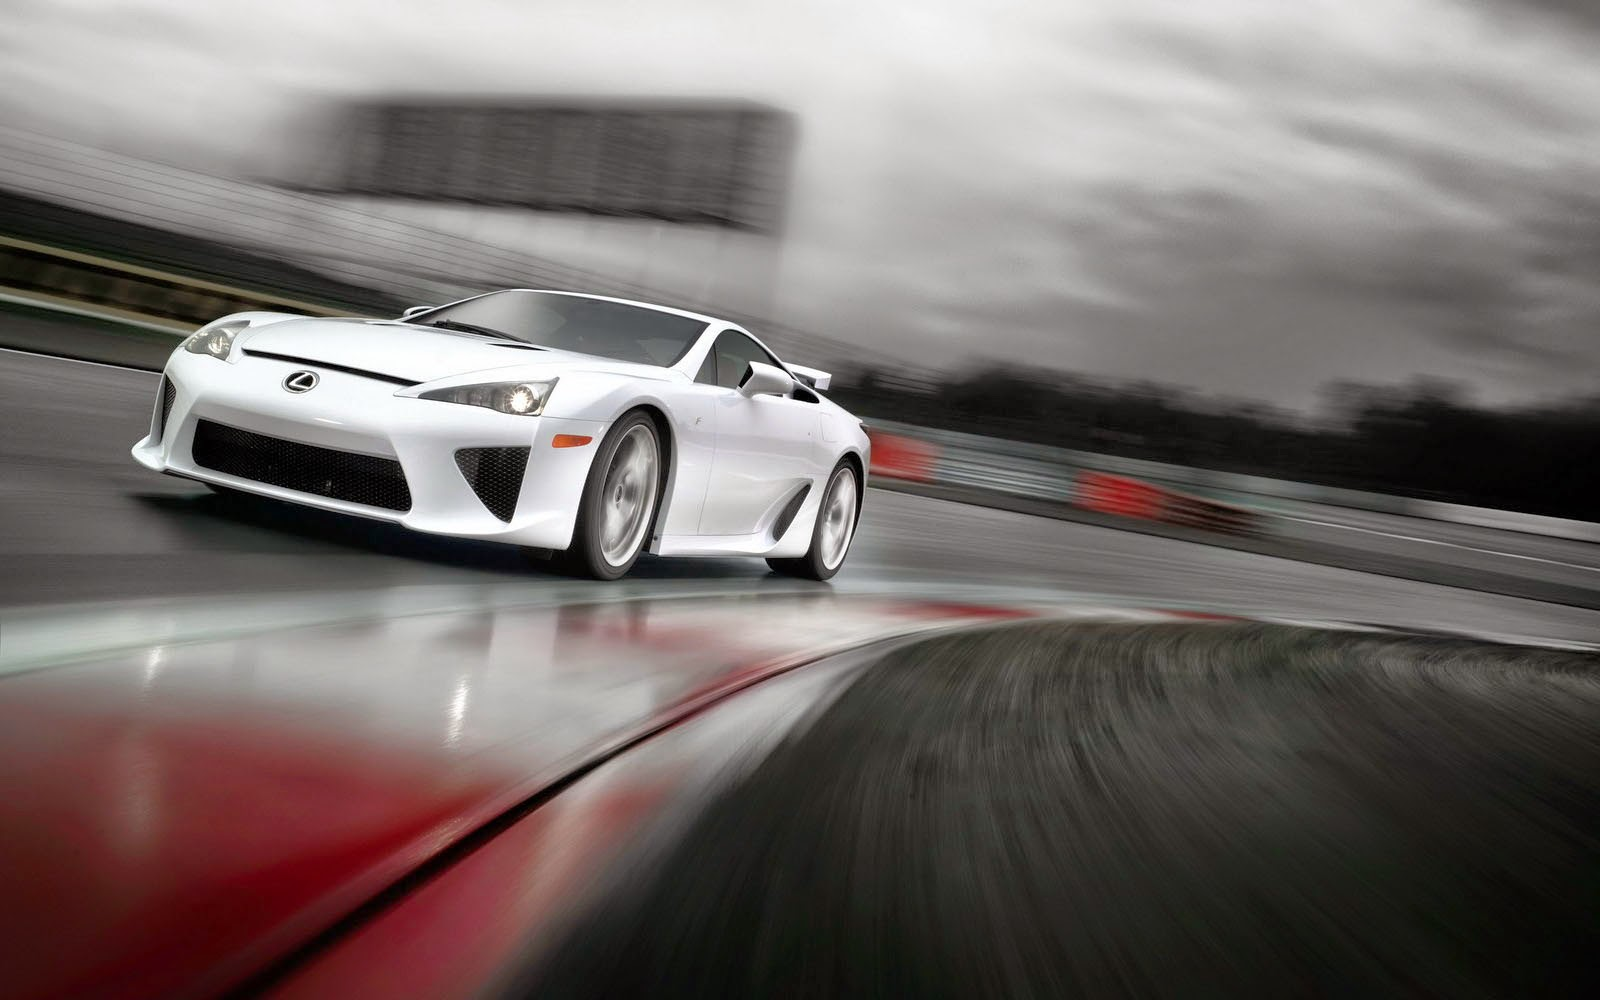 Wallpapers Lexus LFA Wallpapers